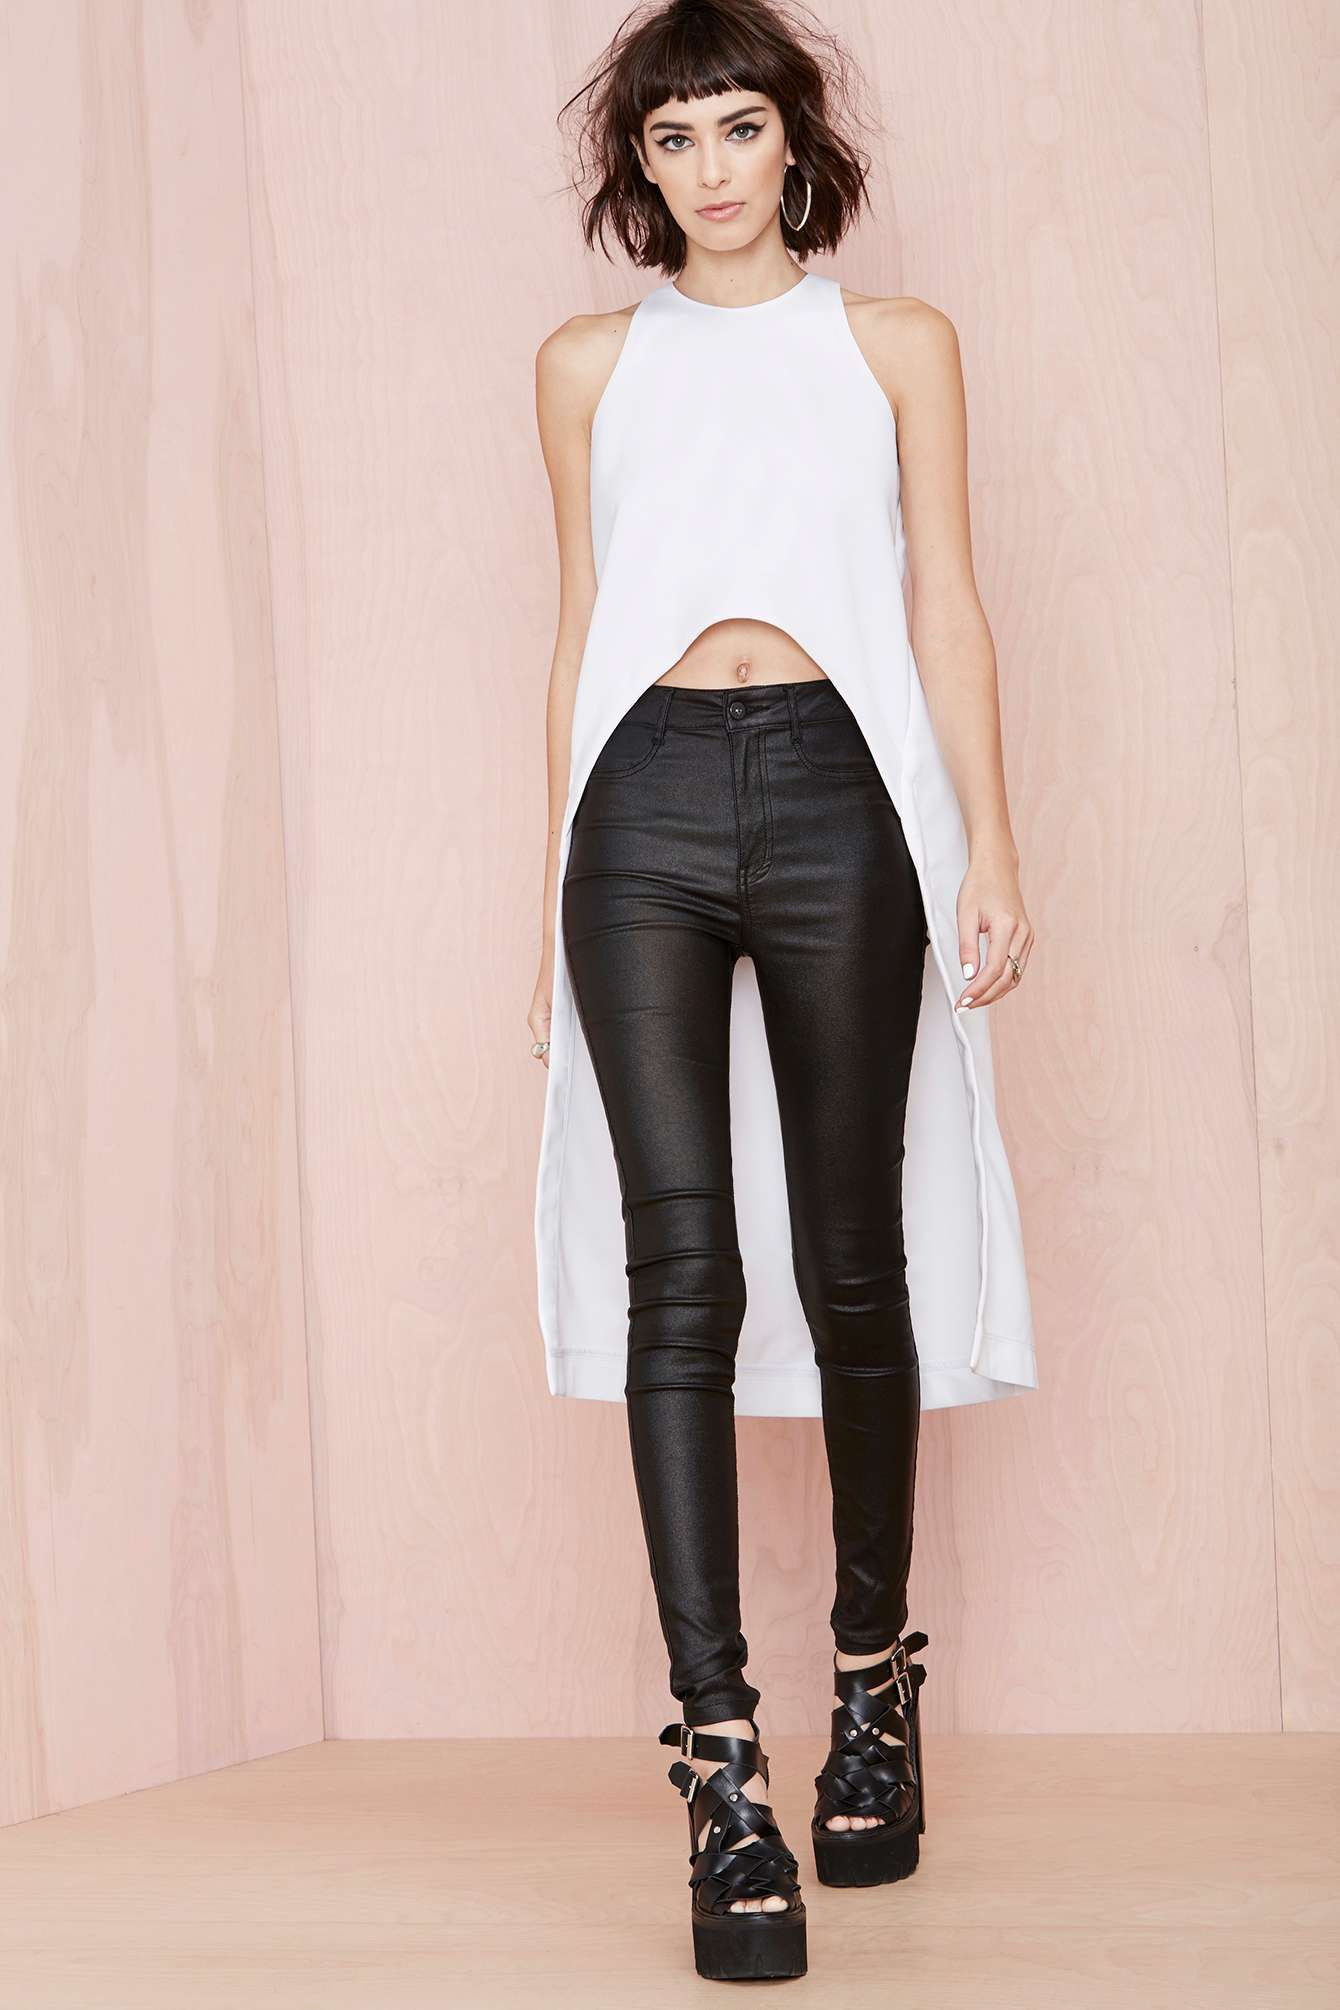 Asilio The Long And Short Of It Top | Shop Play, Girl at Nasty Gal